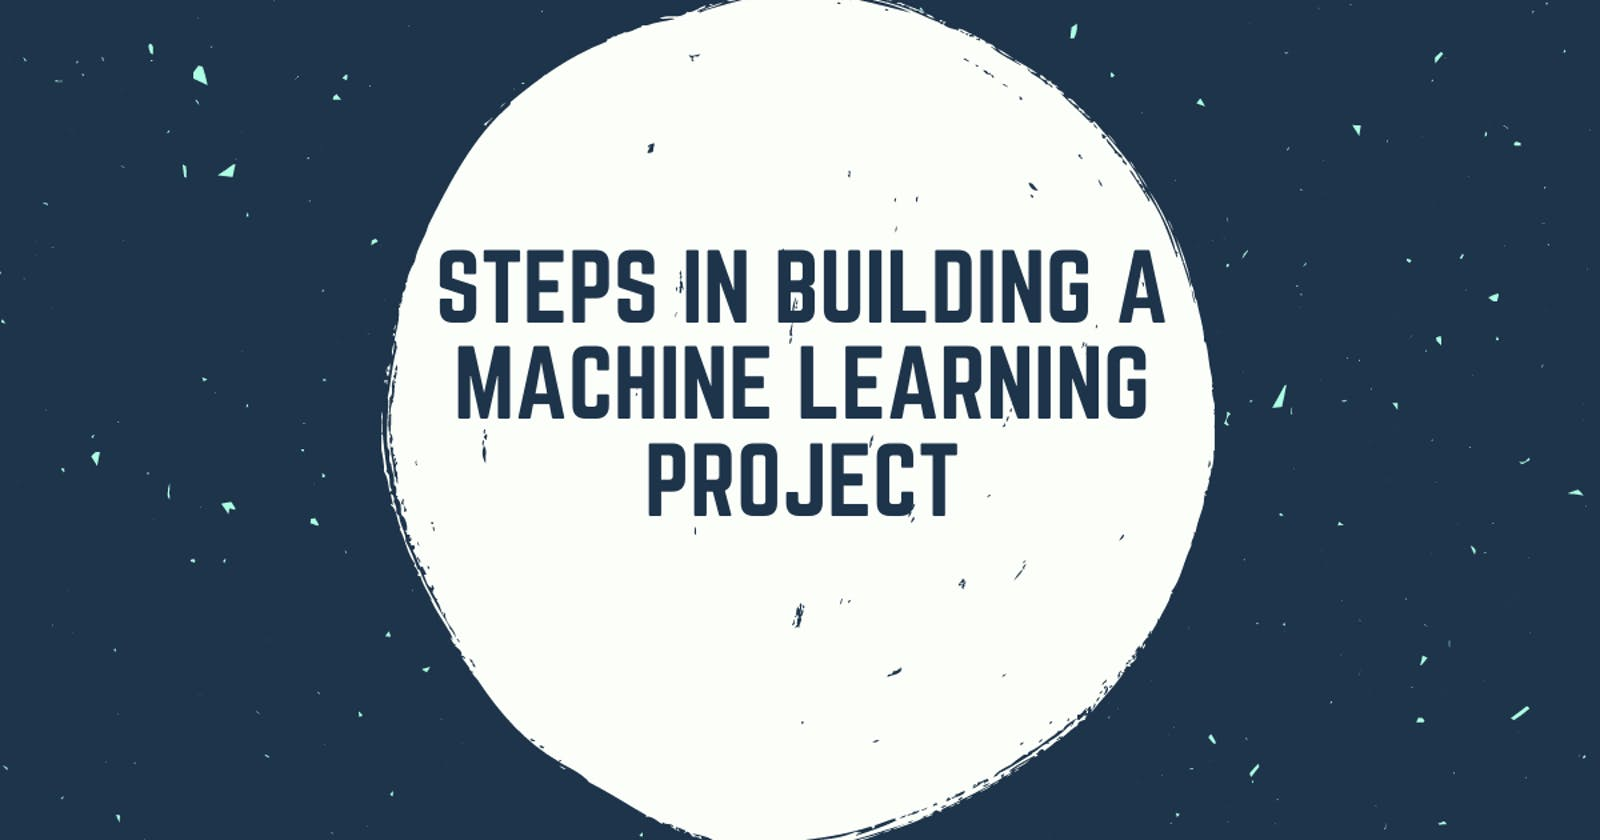 Steps in Building a Machine Learning Project